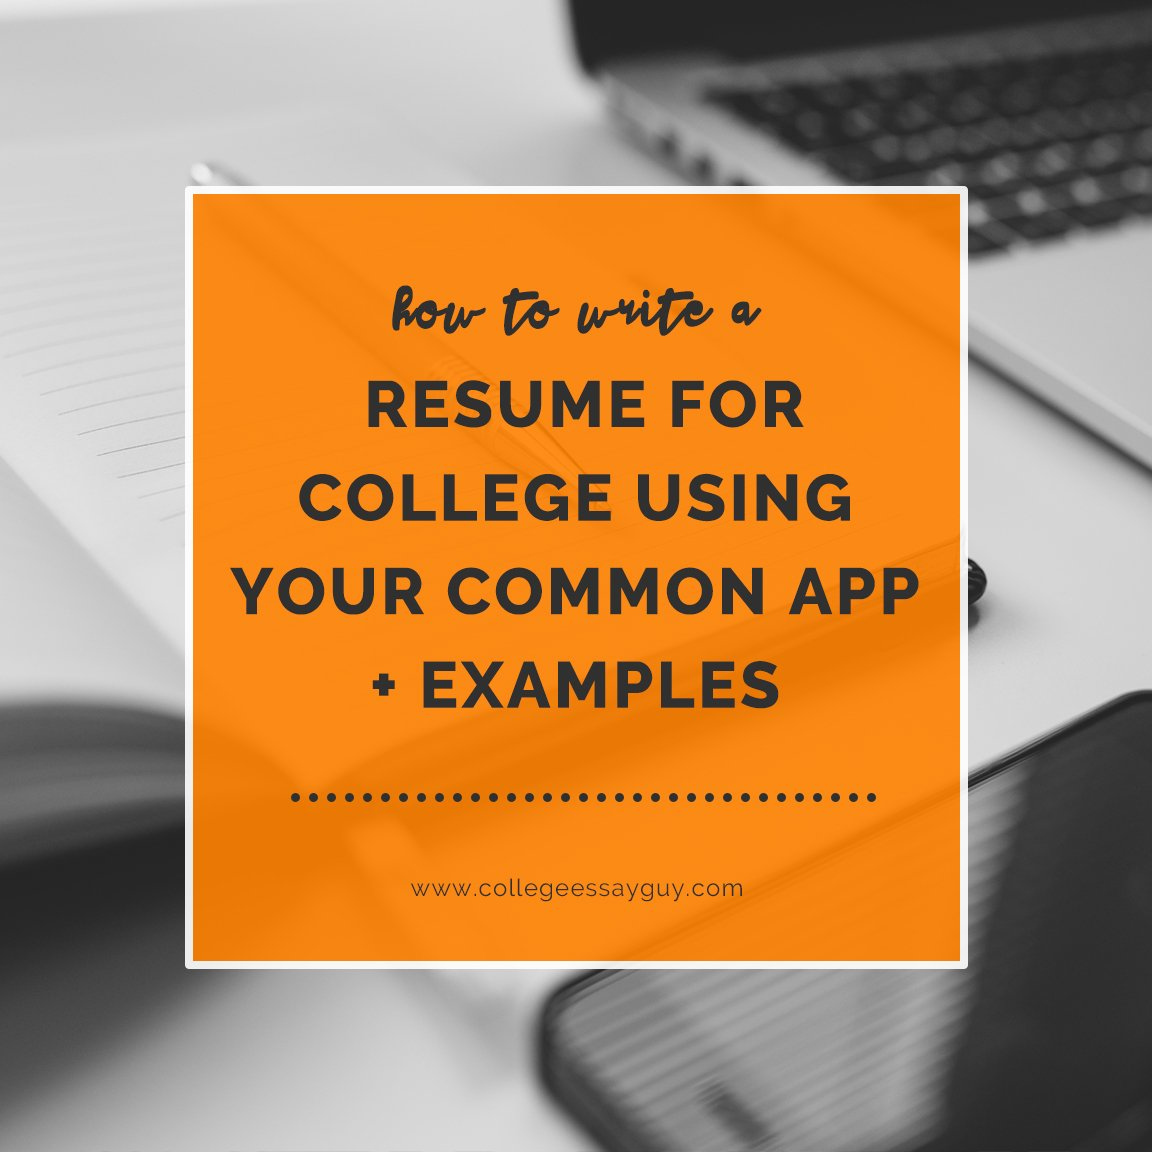 Here's how to write a resume for college using your Common App by providing tons of example college resumes, tips for how to format your resume, and even templates you can download and use right away. goo.gl/XHdyMj